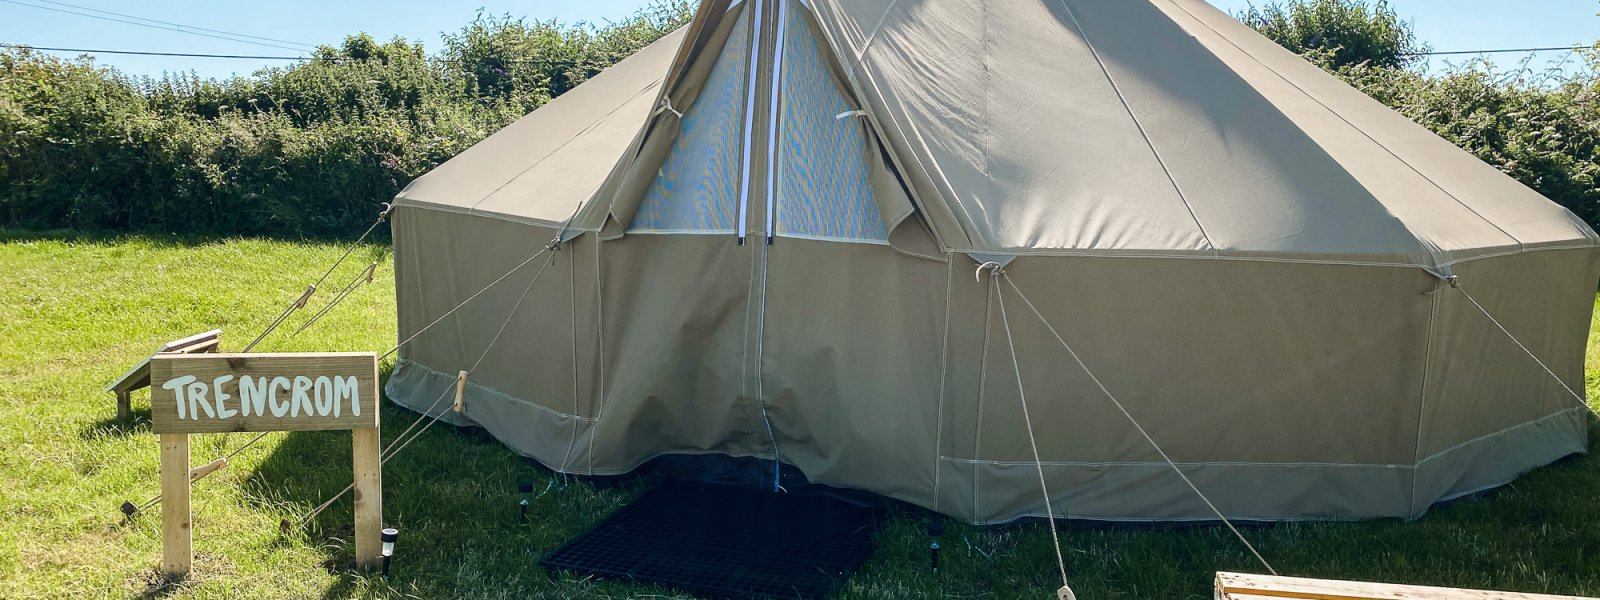 'Wild Camping' & Bell Tents in St. Ives